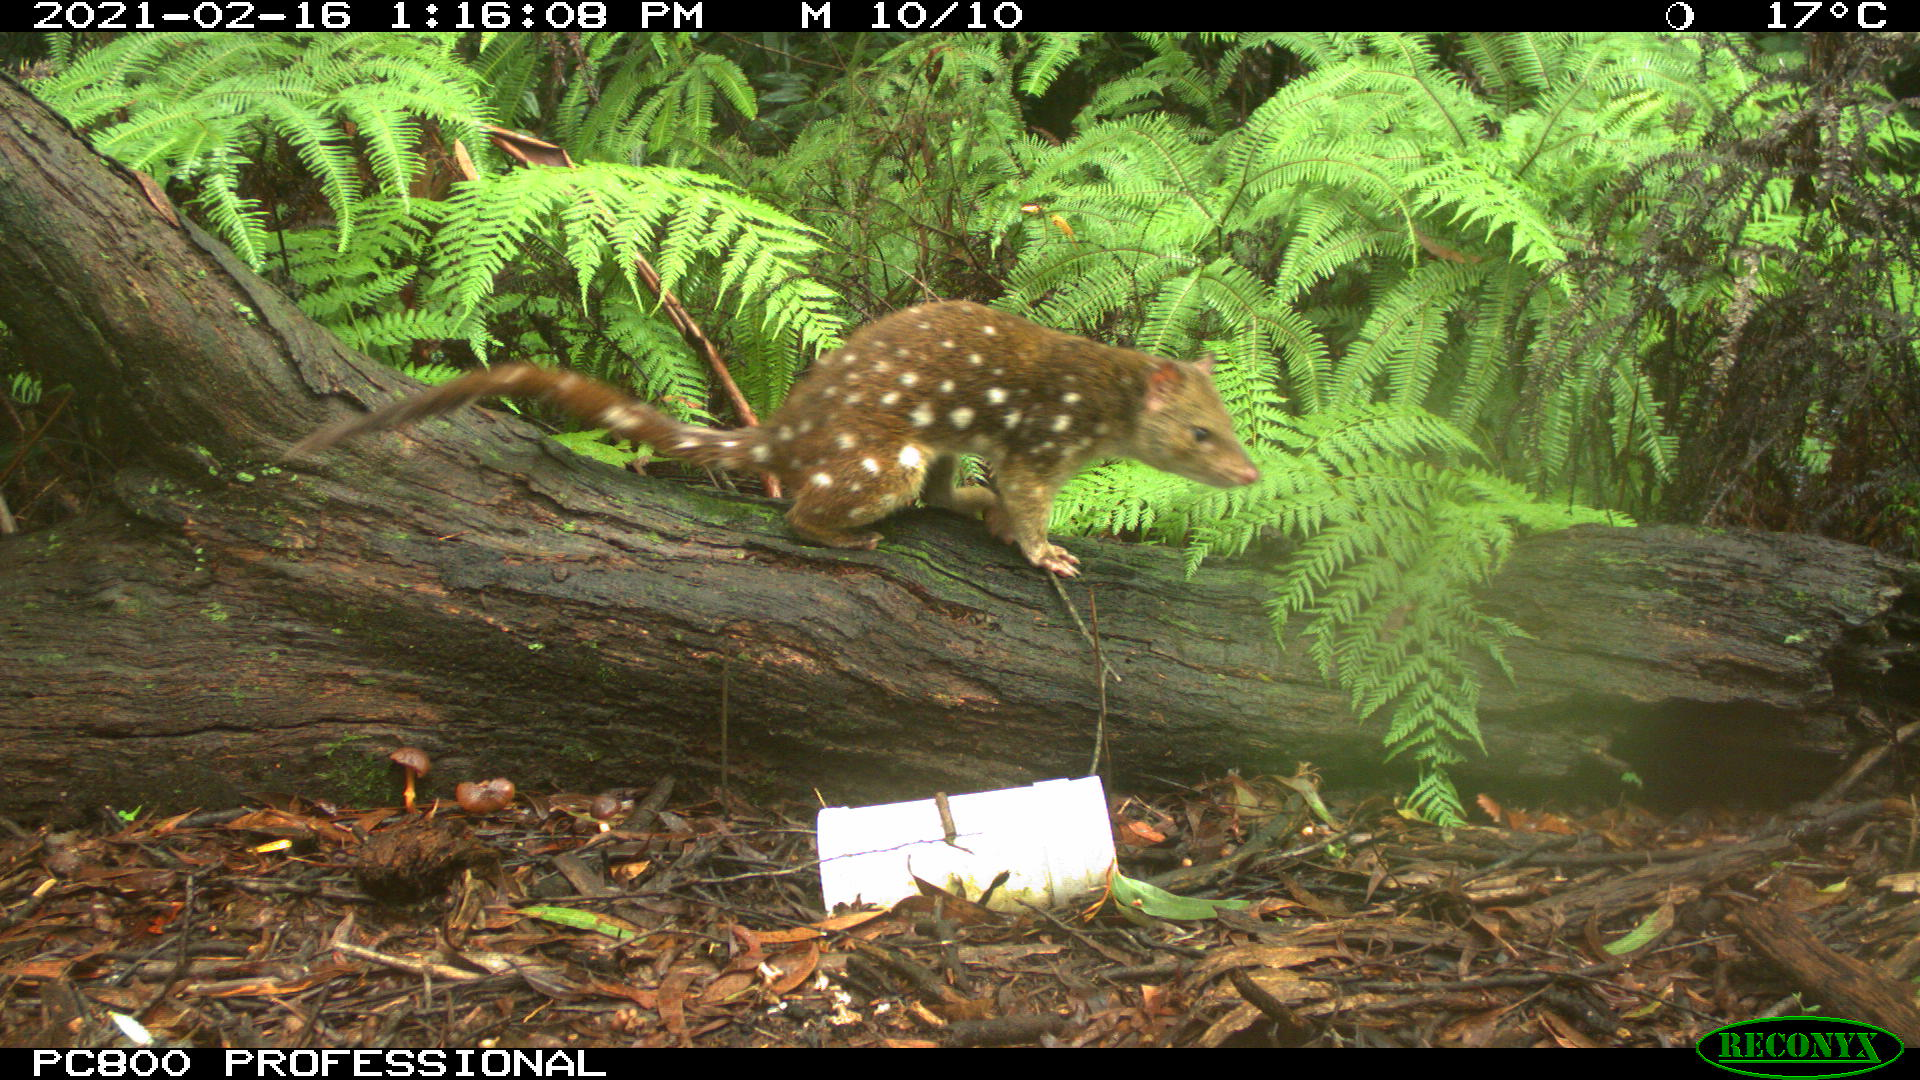 A quoll caught on camera.